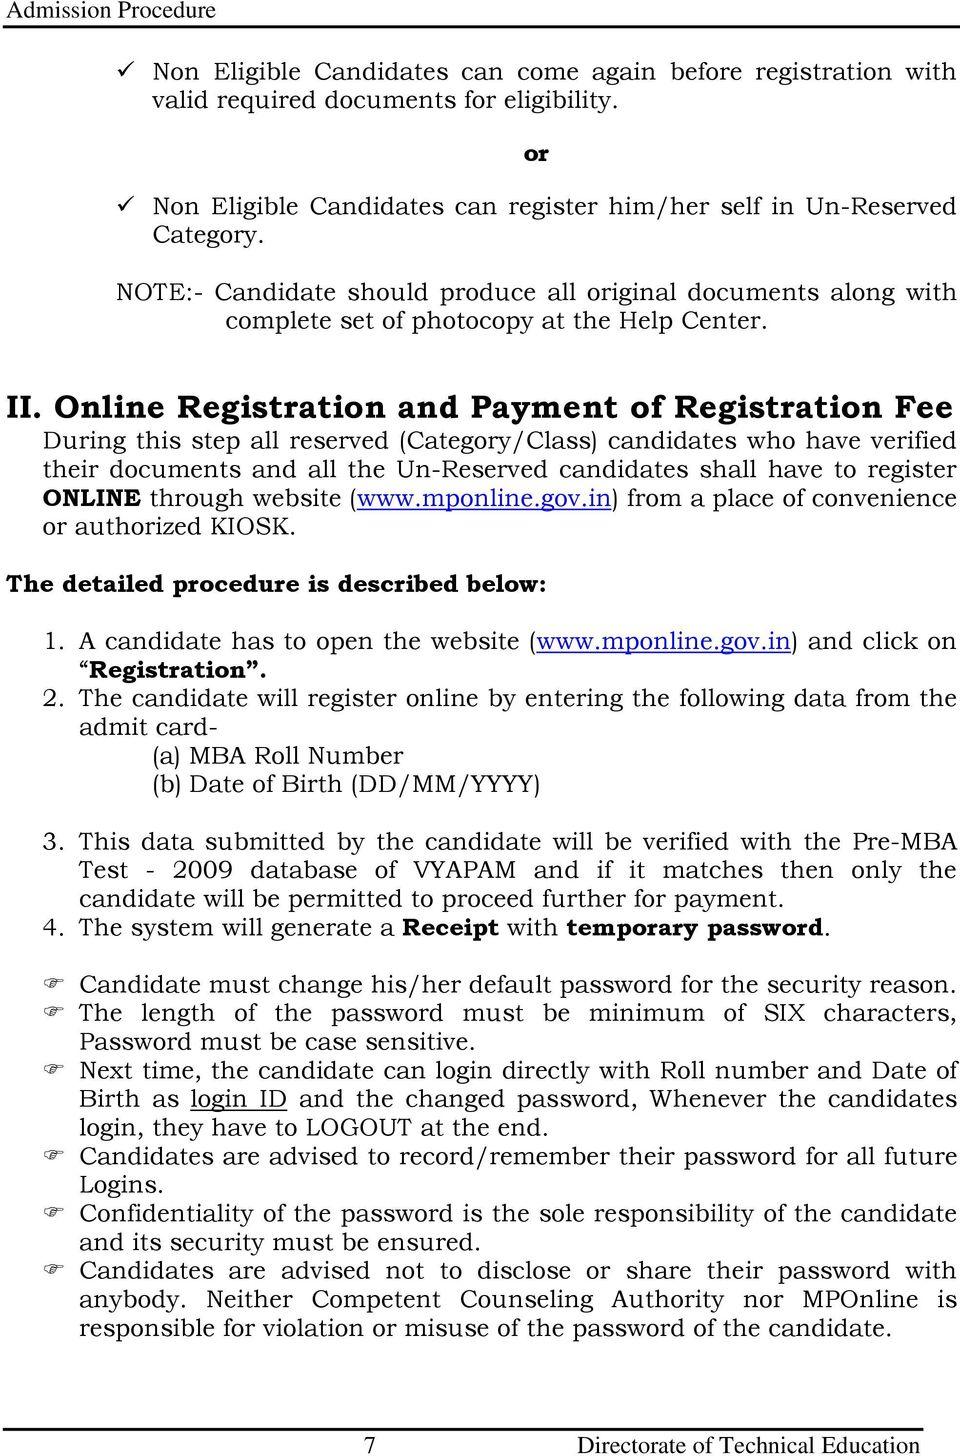 Online Registration and Payment of Registration Fee During this step all reserved (Category/Class) candidates who have verified their documents and all the Un-Reserved candidates shall have to